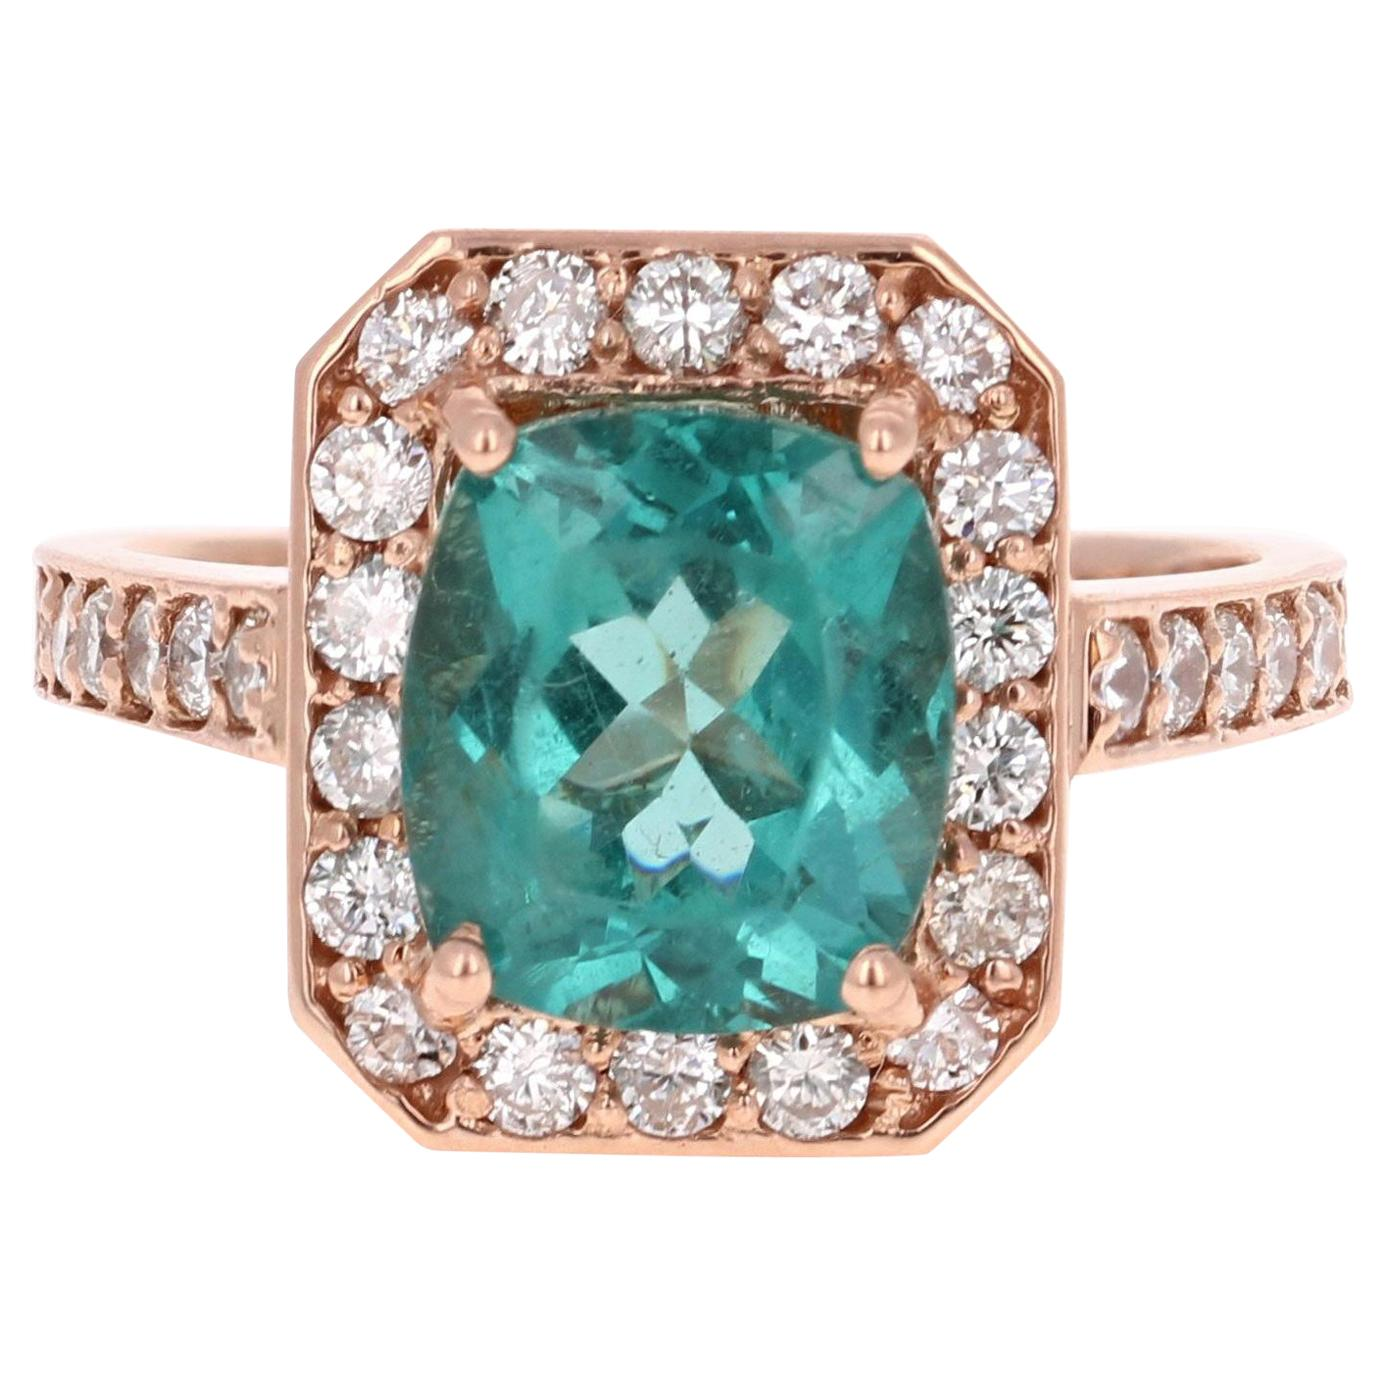 3.75 Carat Apatite Diamond 14 Karat Rose Gold Halo Engagement Ring